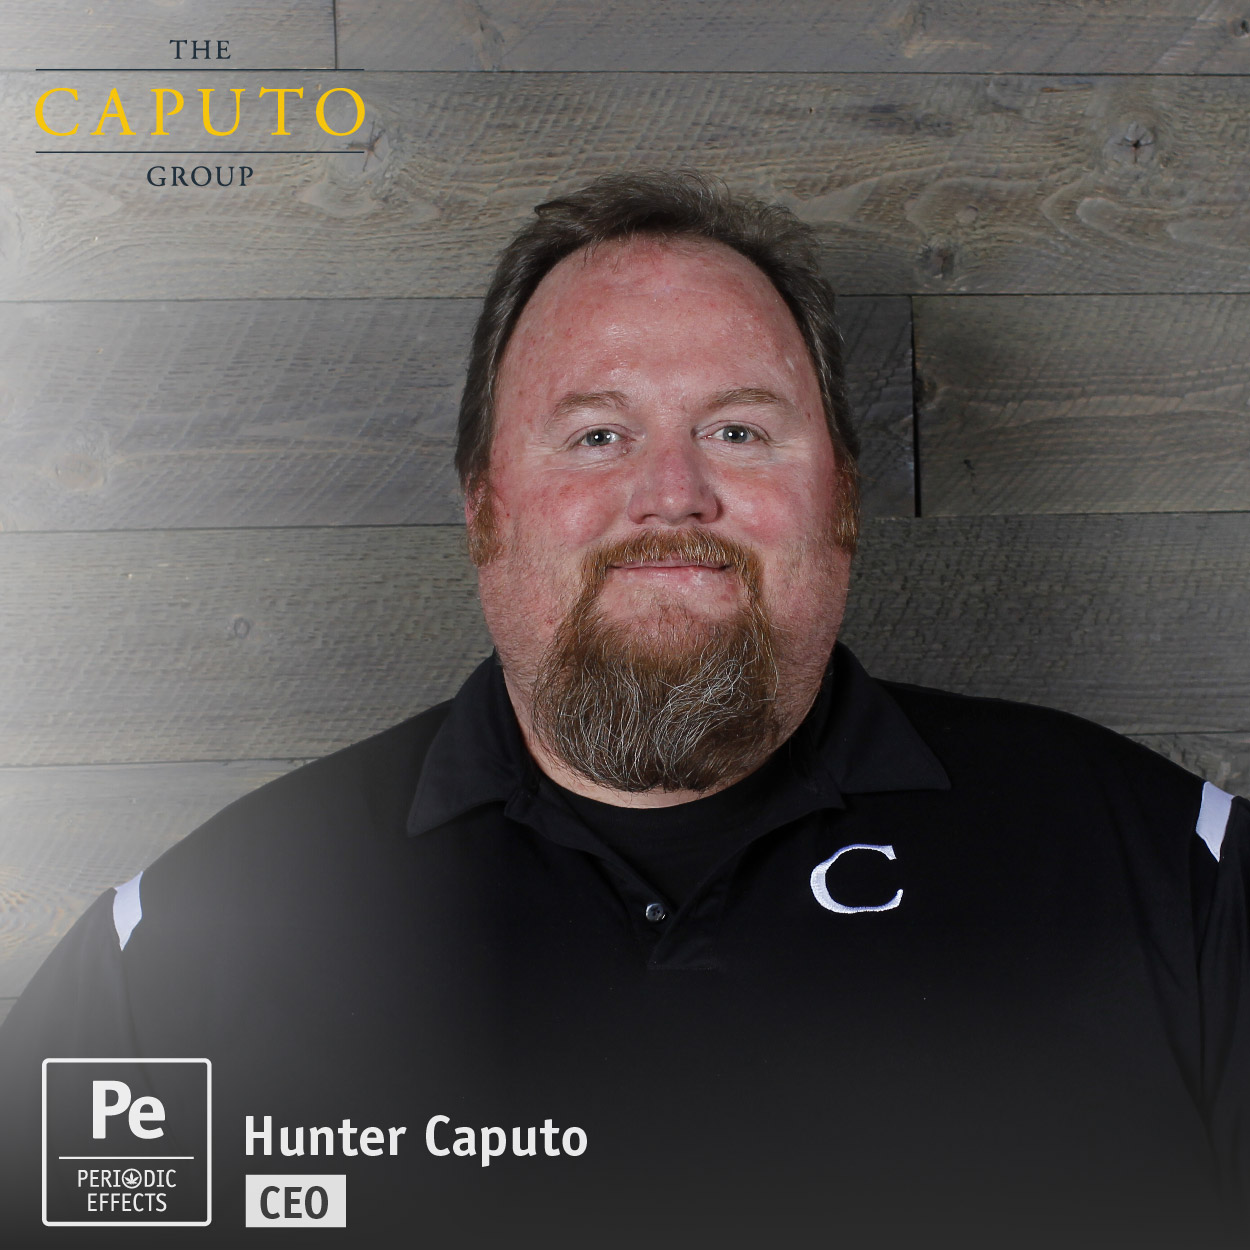 Hunter Caputo, CEO of The Caputo Group. A cannabis business consulting firm specializing in HR, Finances, Growth and more, based in Portland, Oregon.